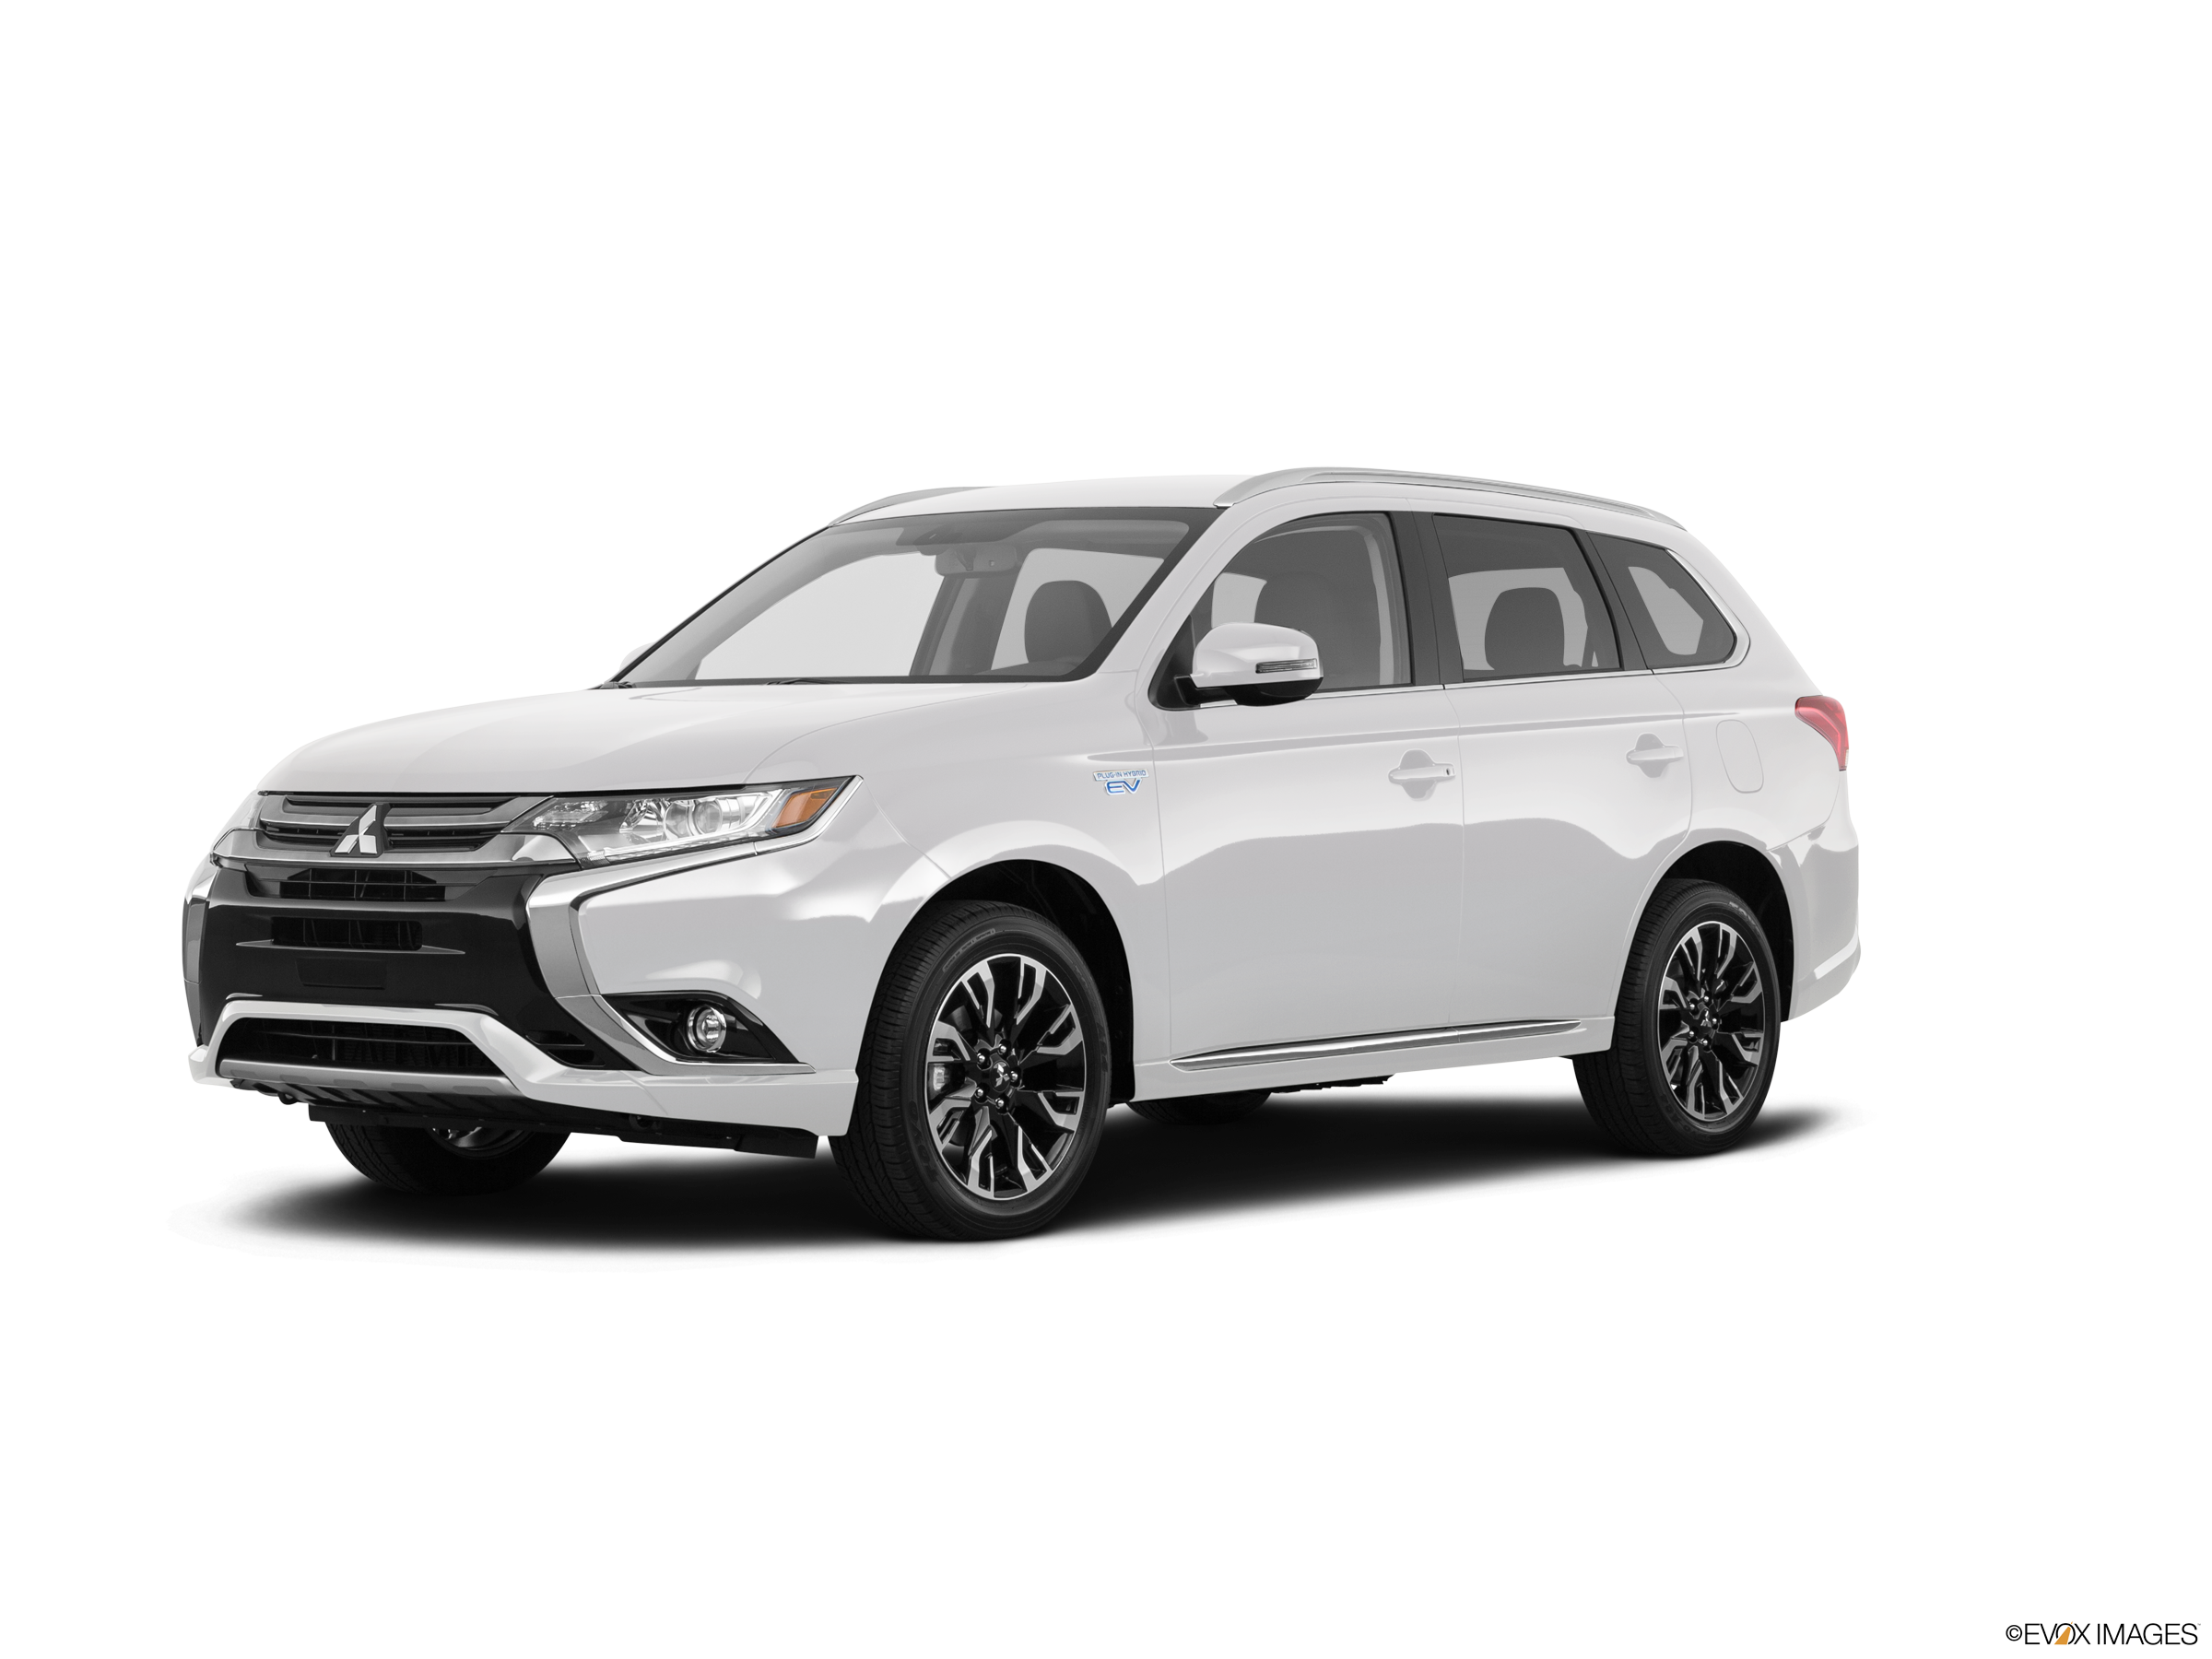 Most Popular Electric Cars of 2018 - 2018 Mitsubishi Outlander PHEV